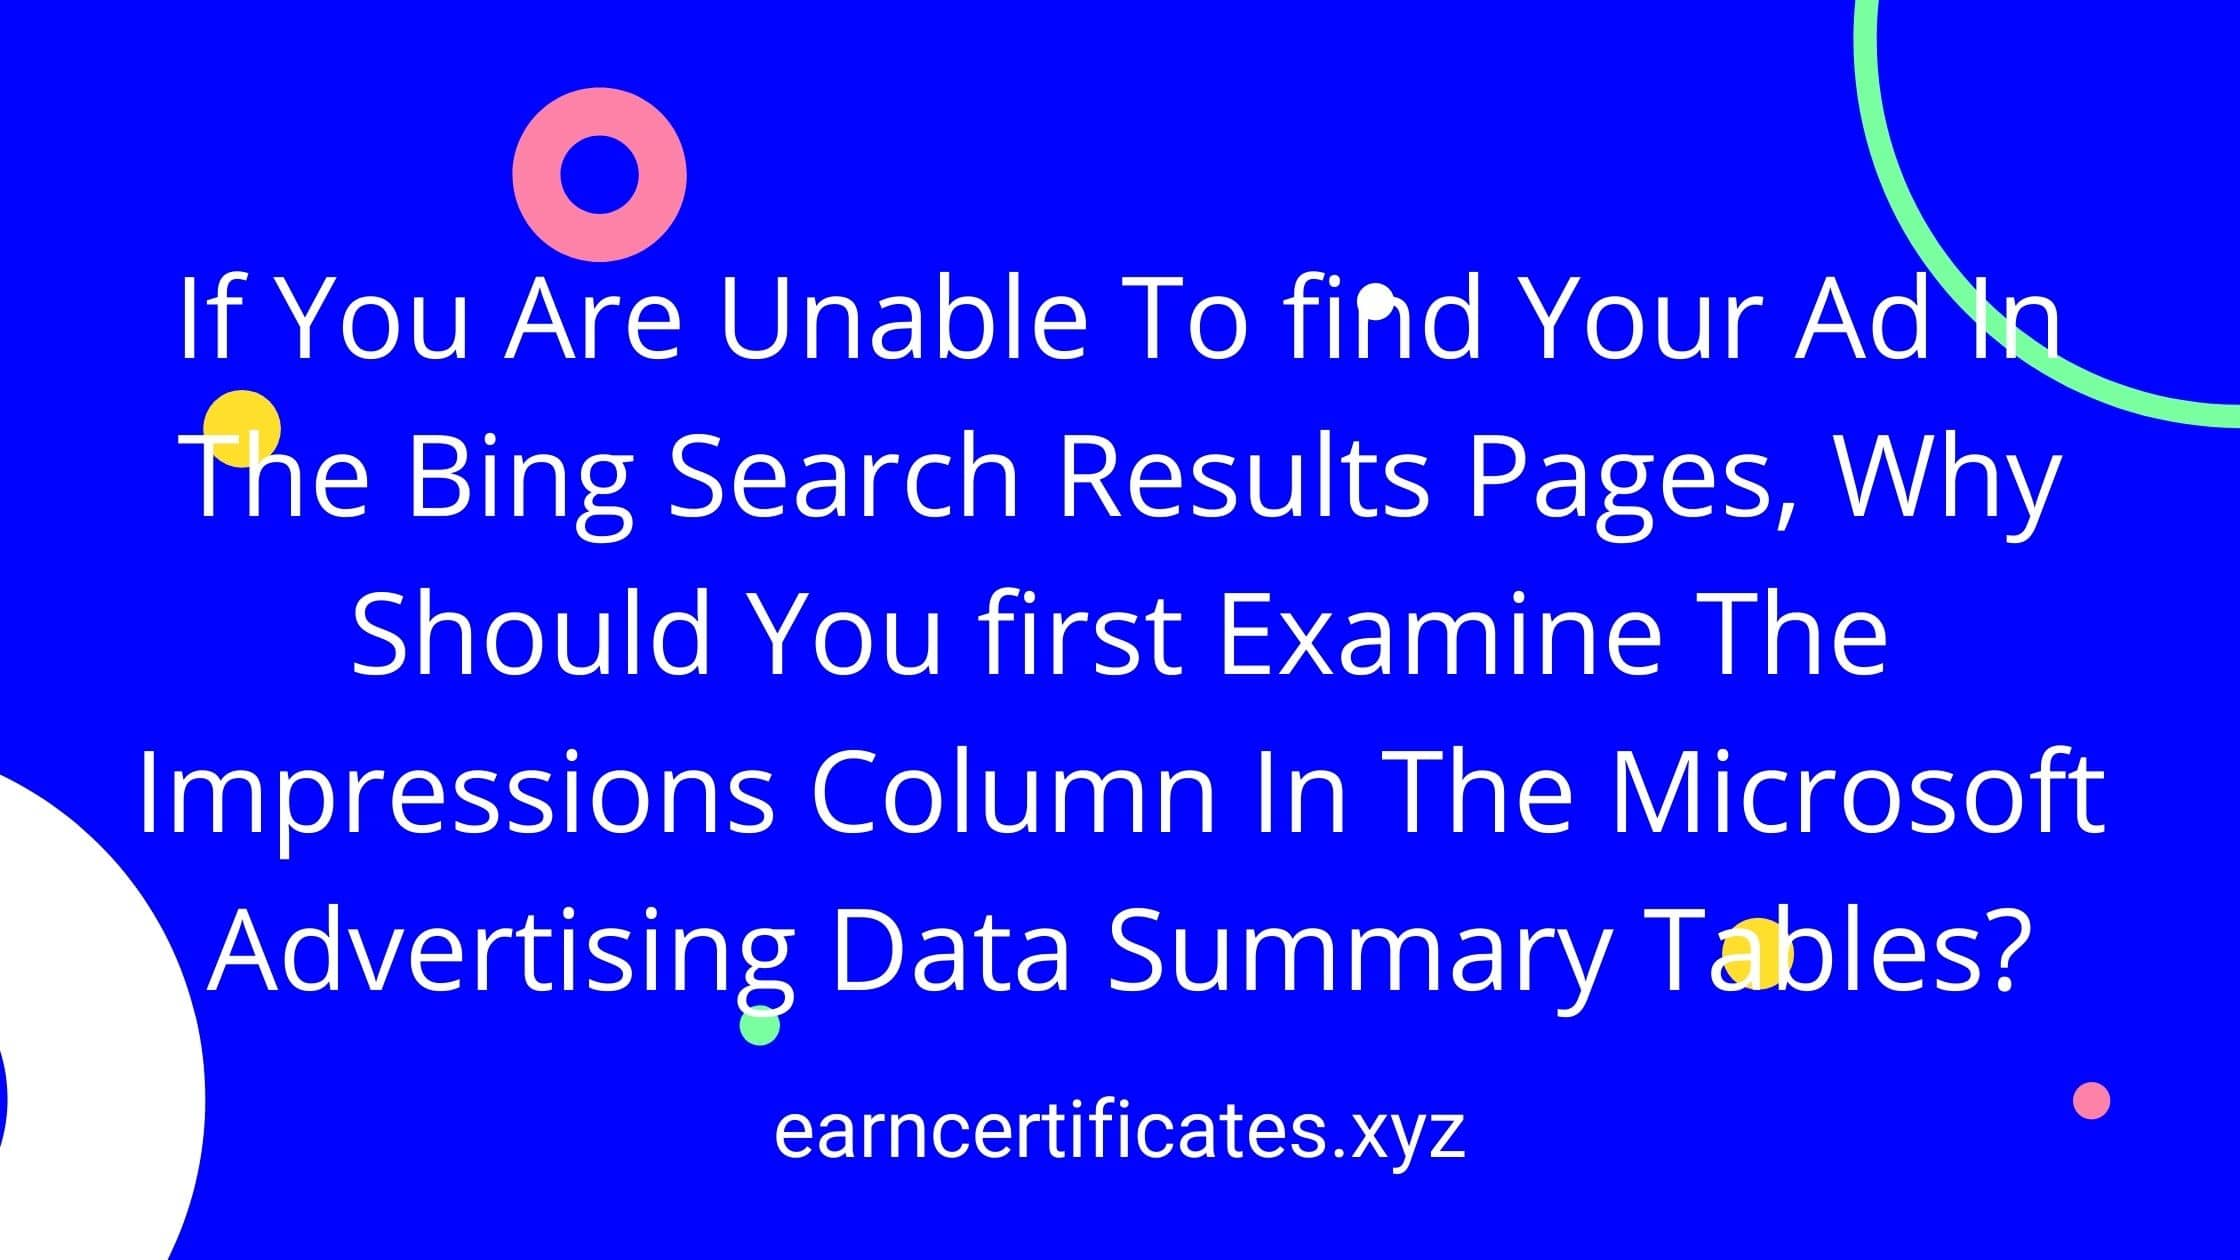 If You Are Unable To find Your Ad In The Bing Search Results Pages, Why Should You first Examine The Impressions Column In The Microsoft Advertising Data Summary Tables?